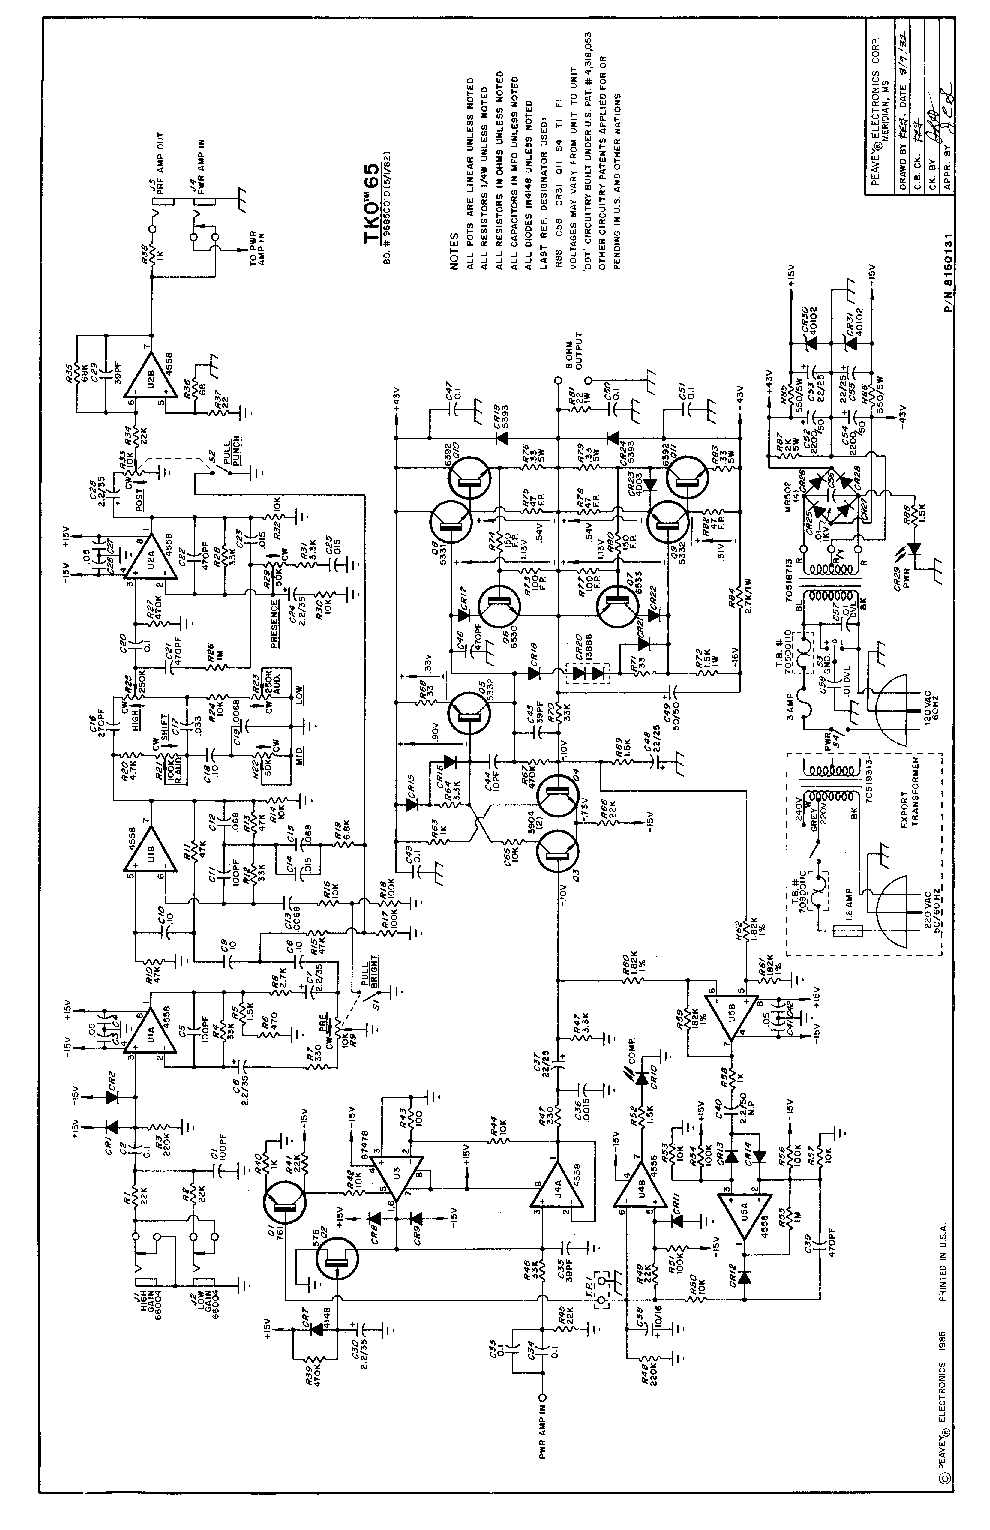 Jeep Patriot Wiring Diagram from schematron.org